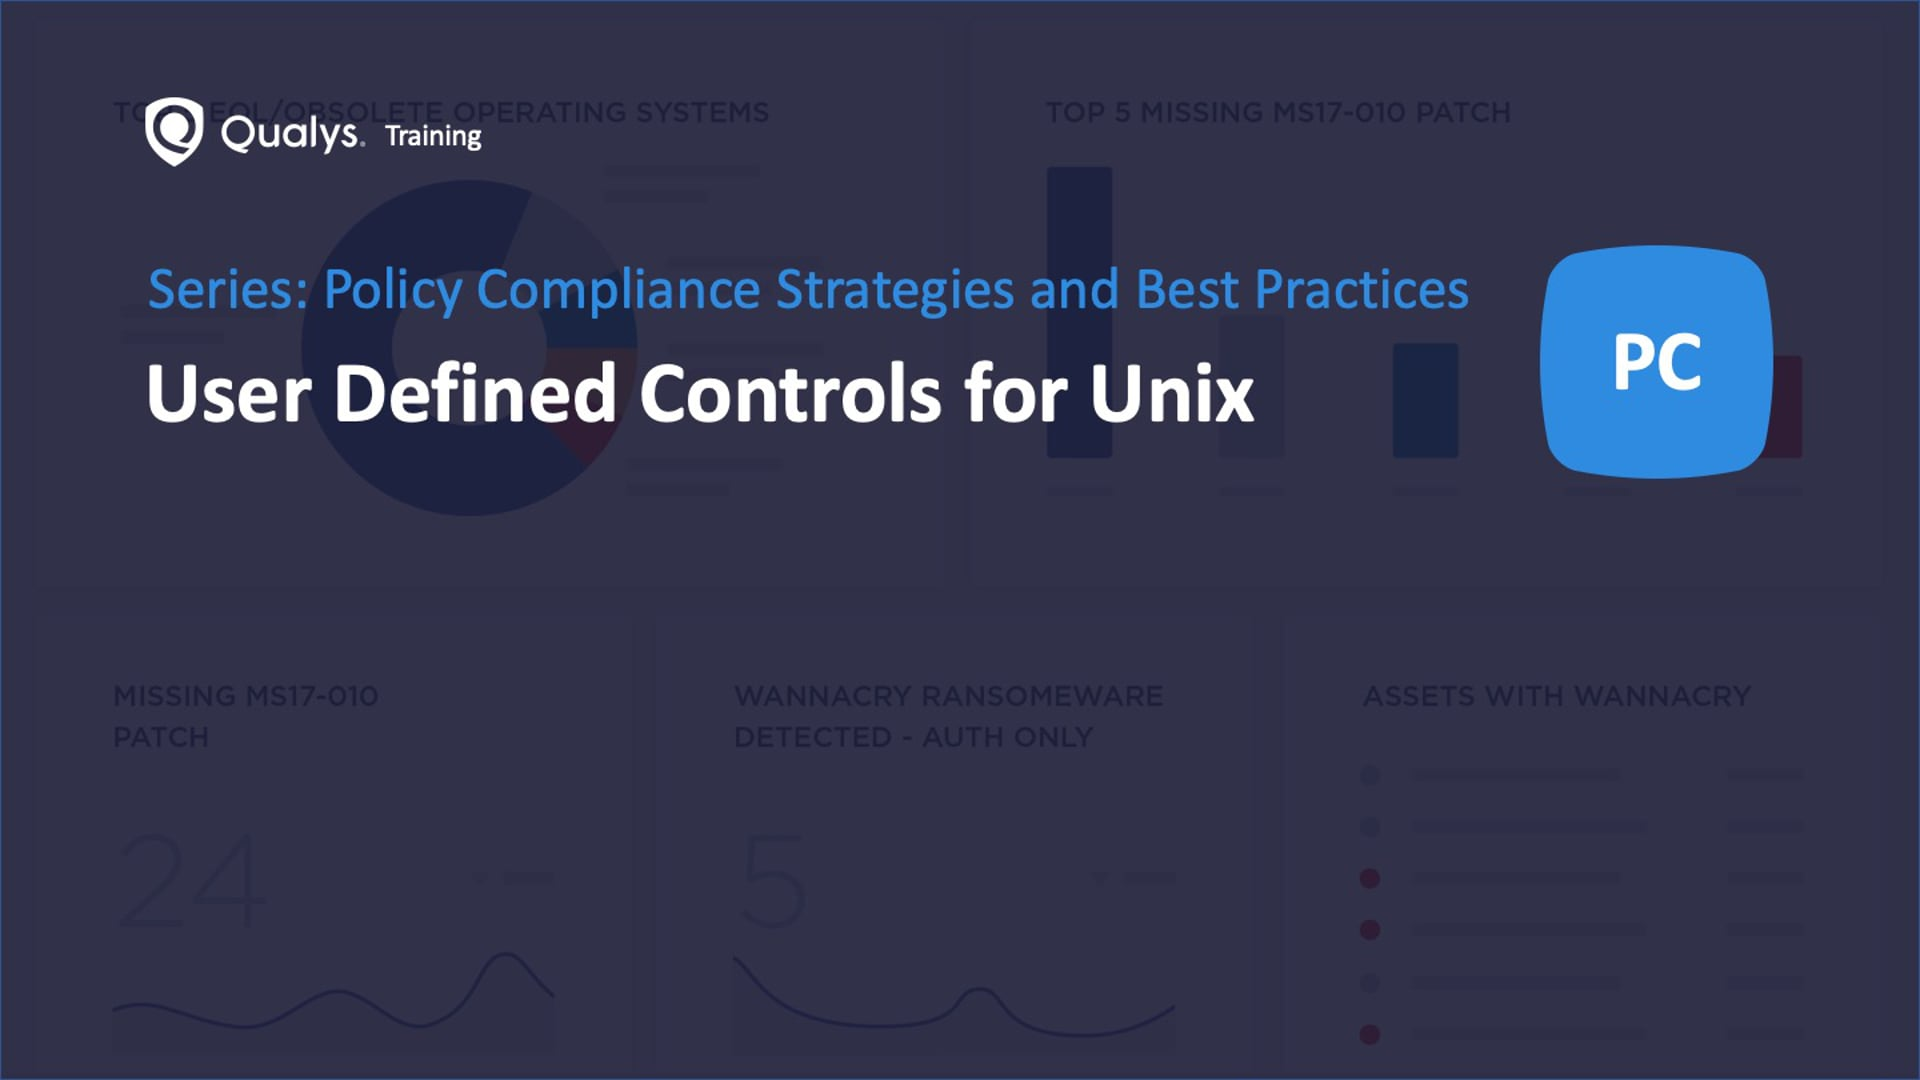 User Defined Controls for Unix